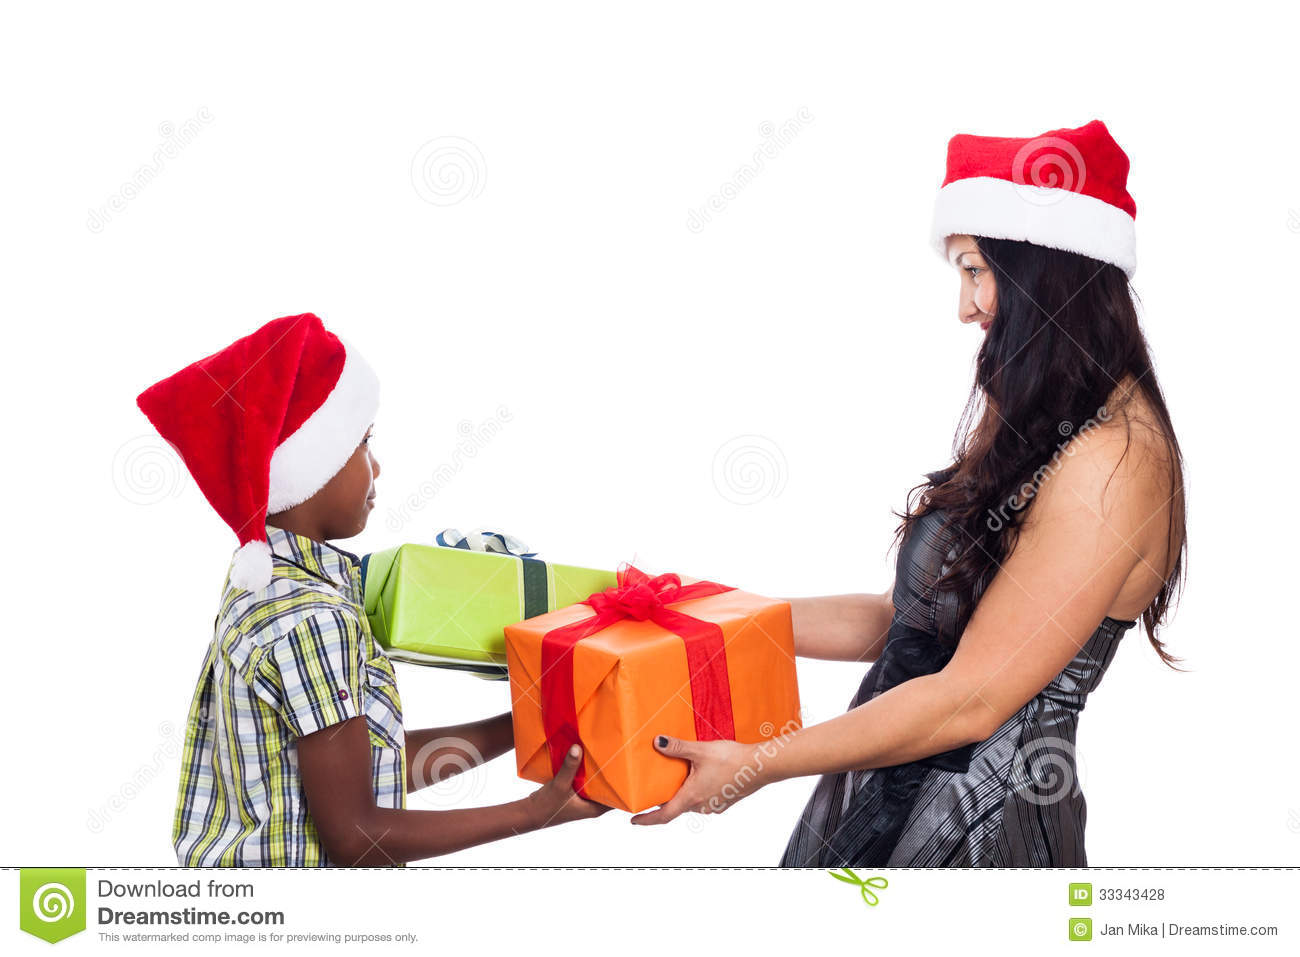 Christmas Family Giving Presents Stock Photo - Image: 33343428